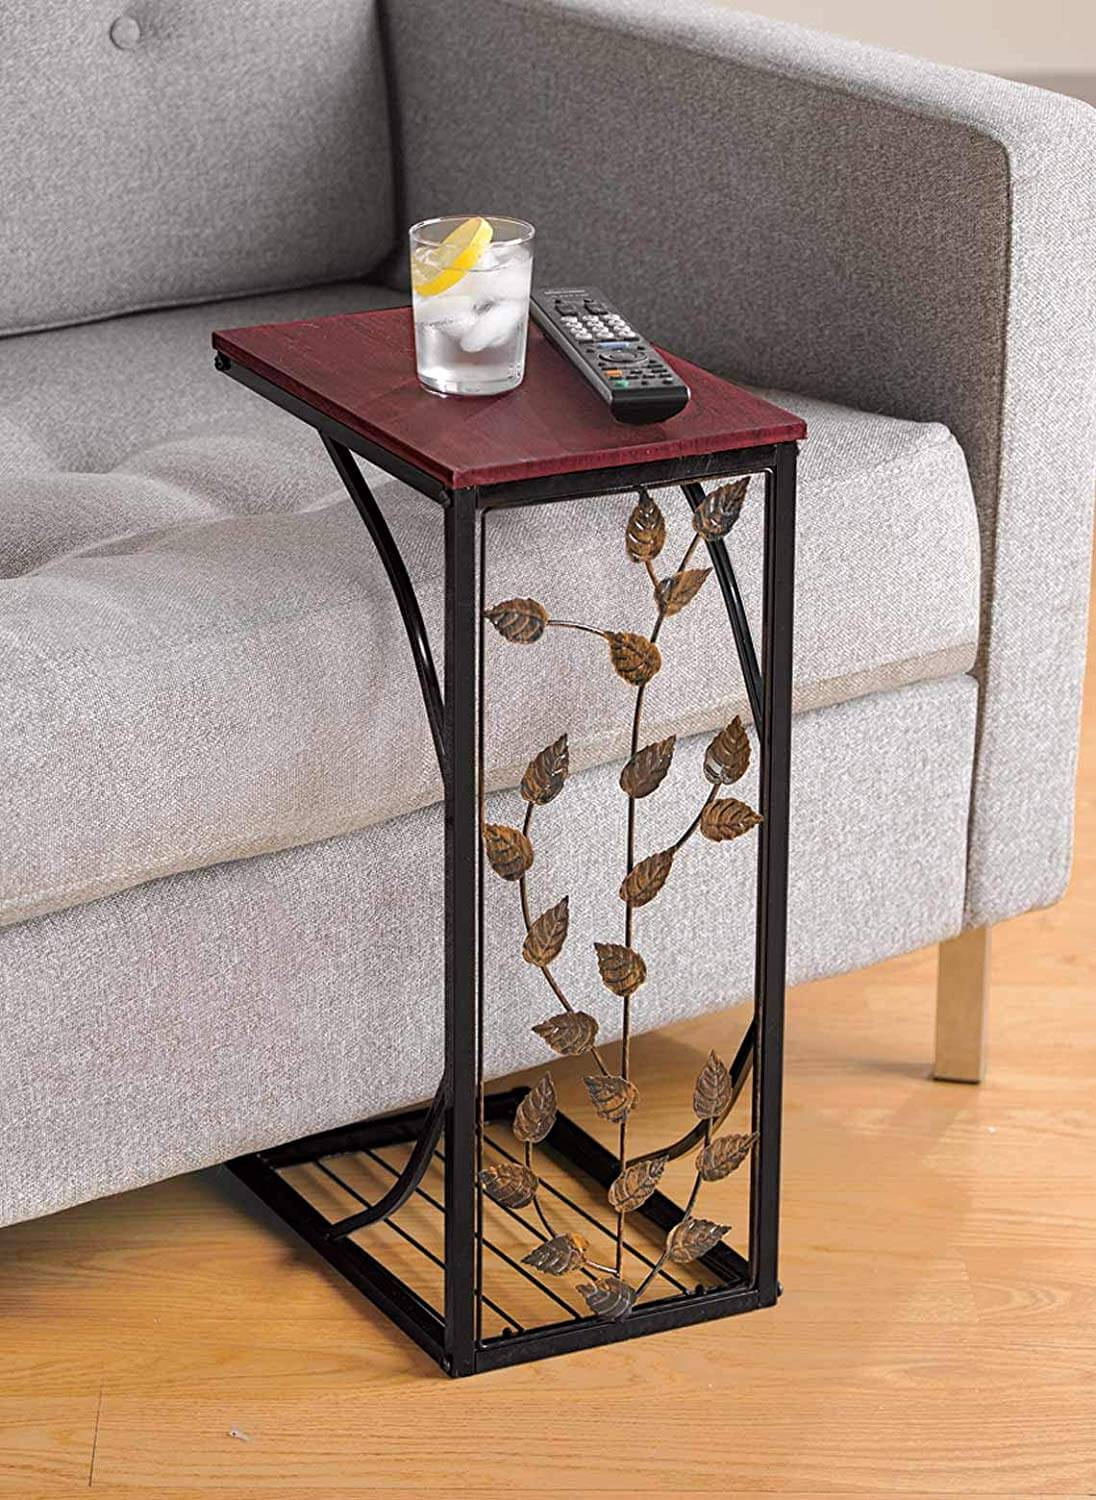 UNIQUE CONNECTED END TABLE WOOD TOP DESIGN IDEAS